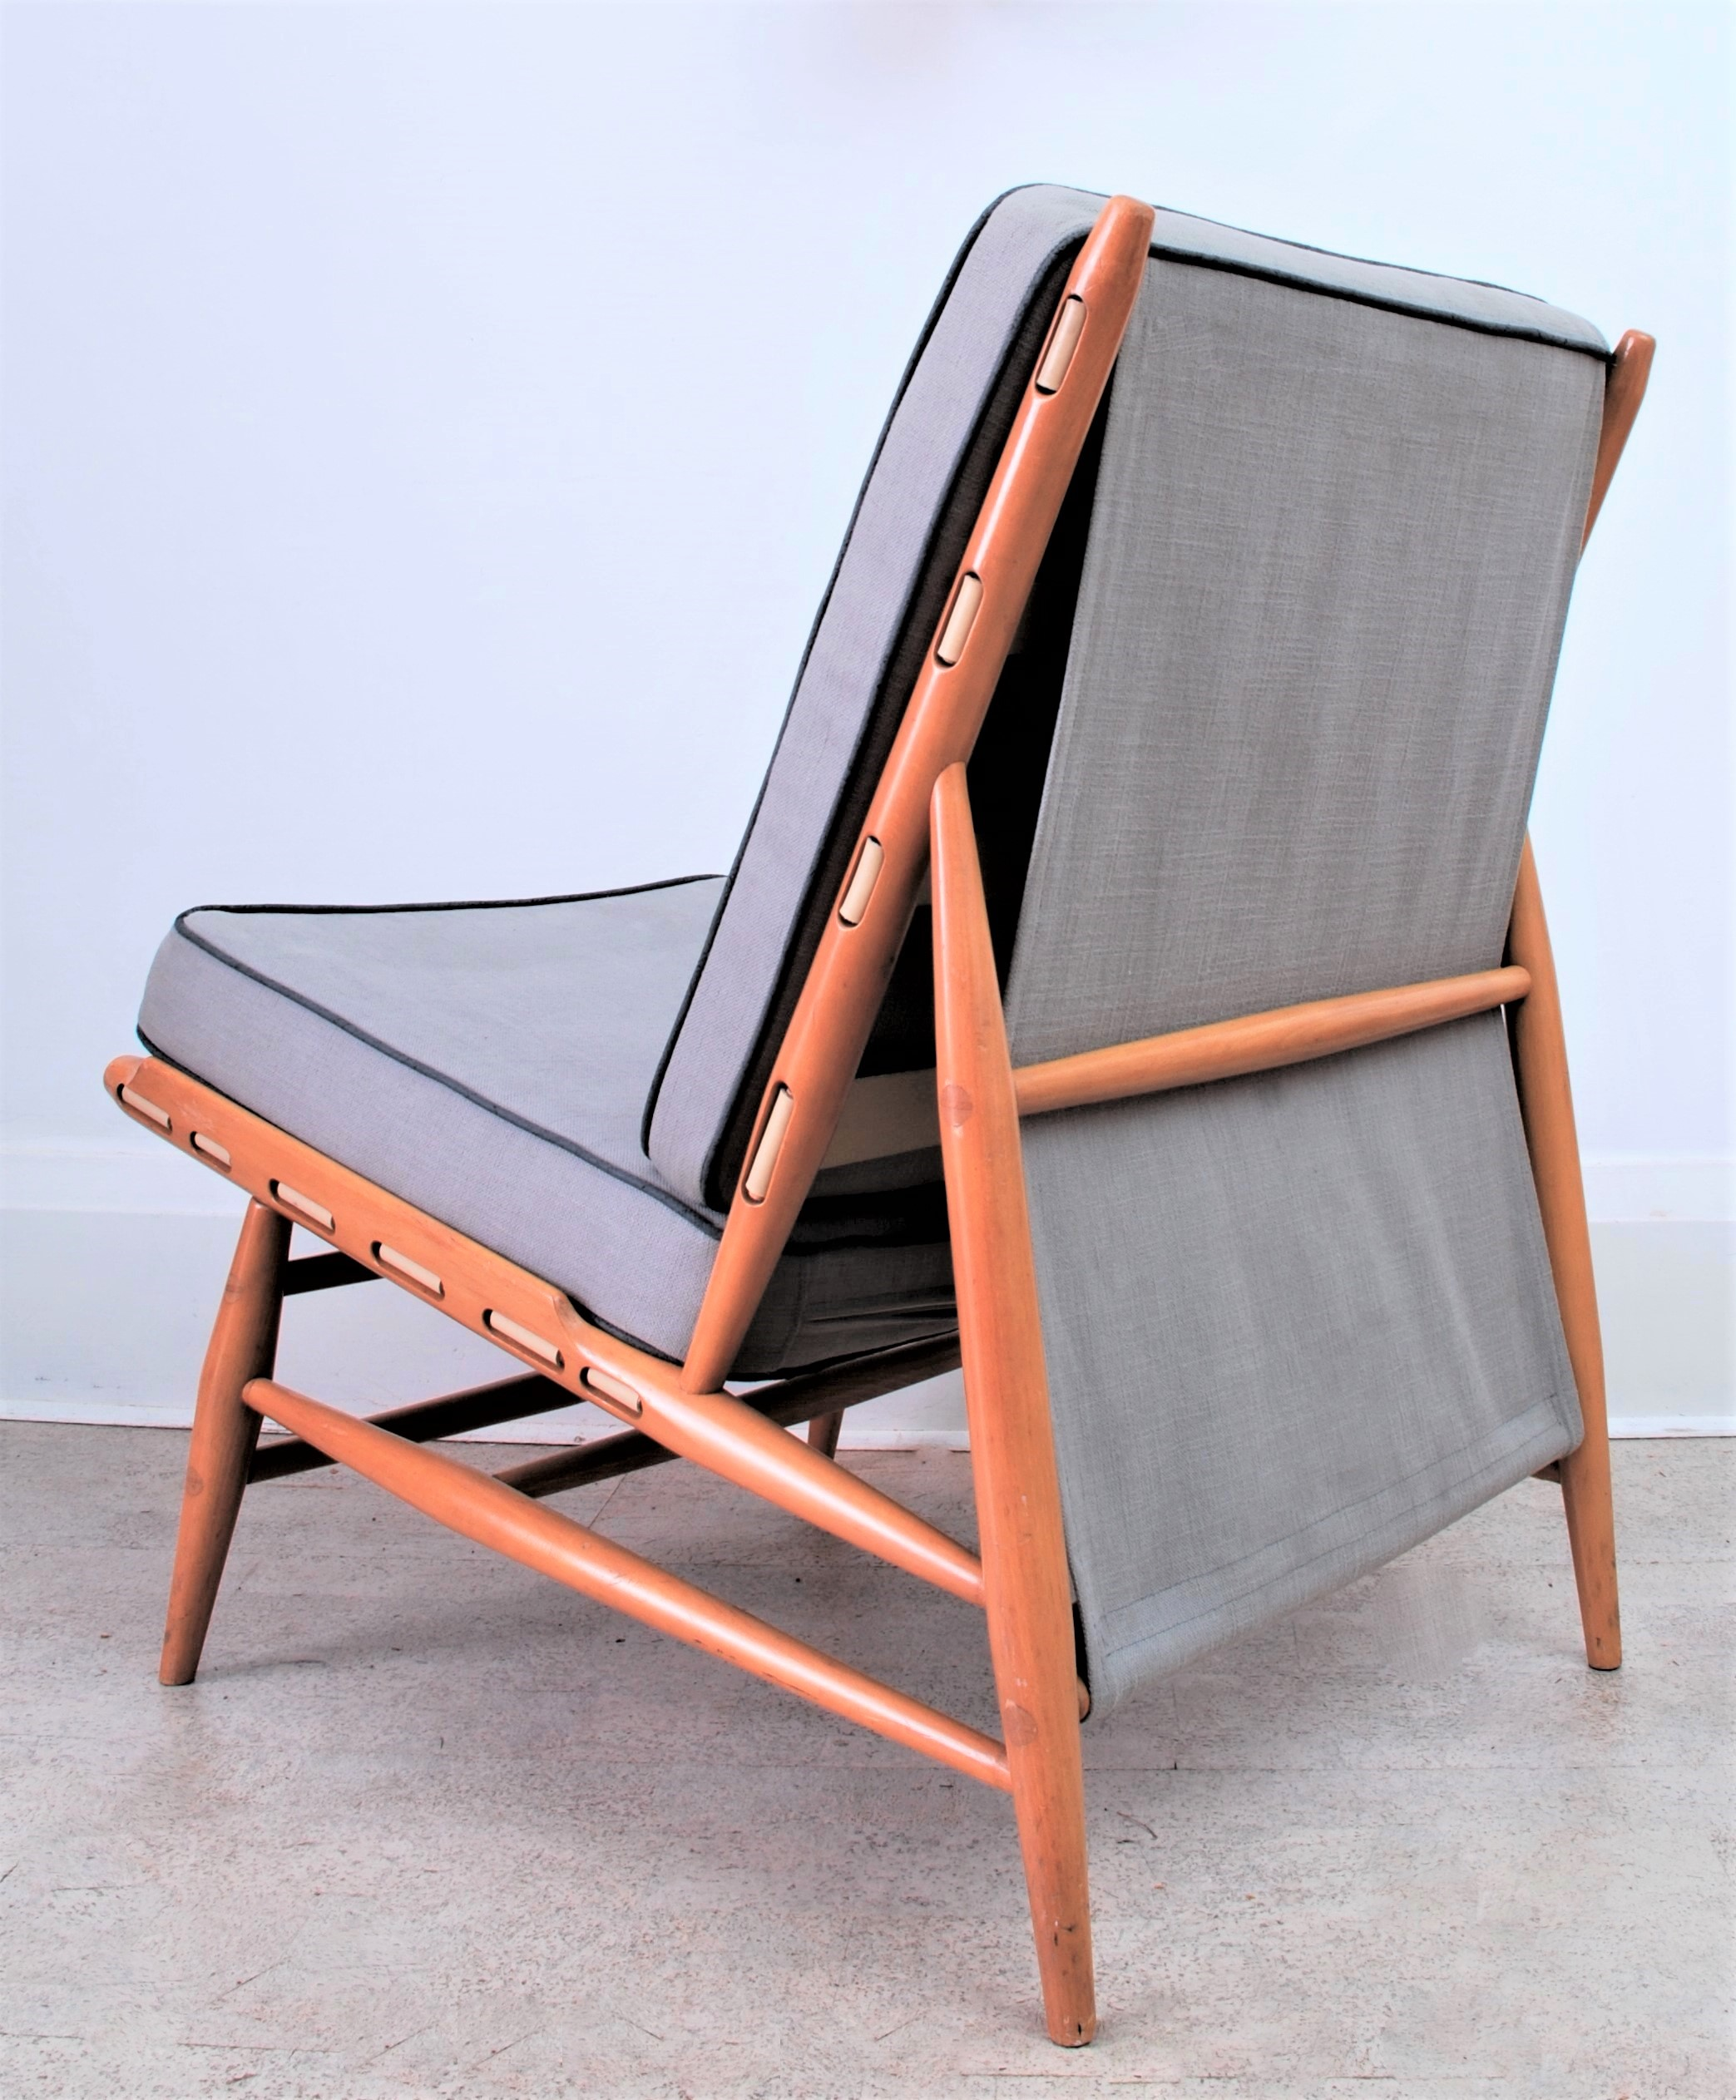 Ercol 427 Modular Lounge Chair (4)